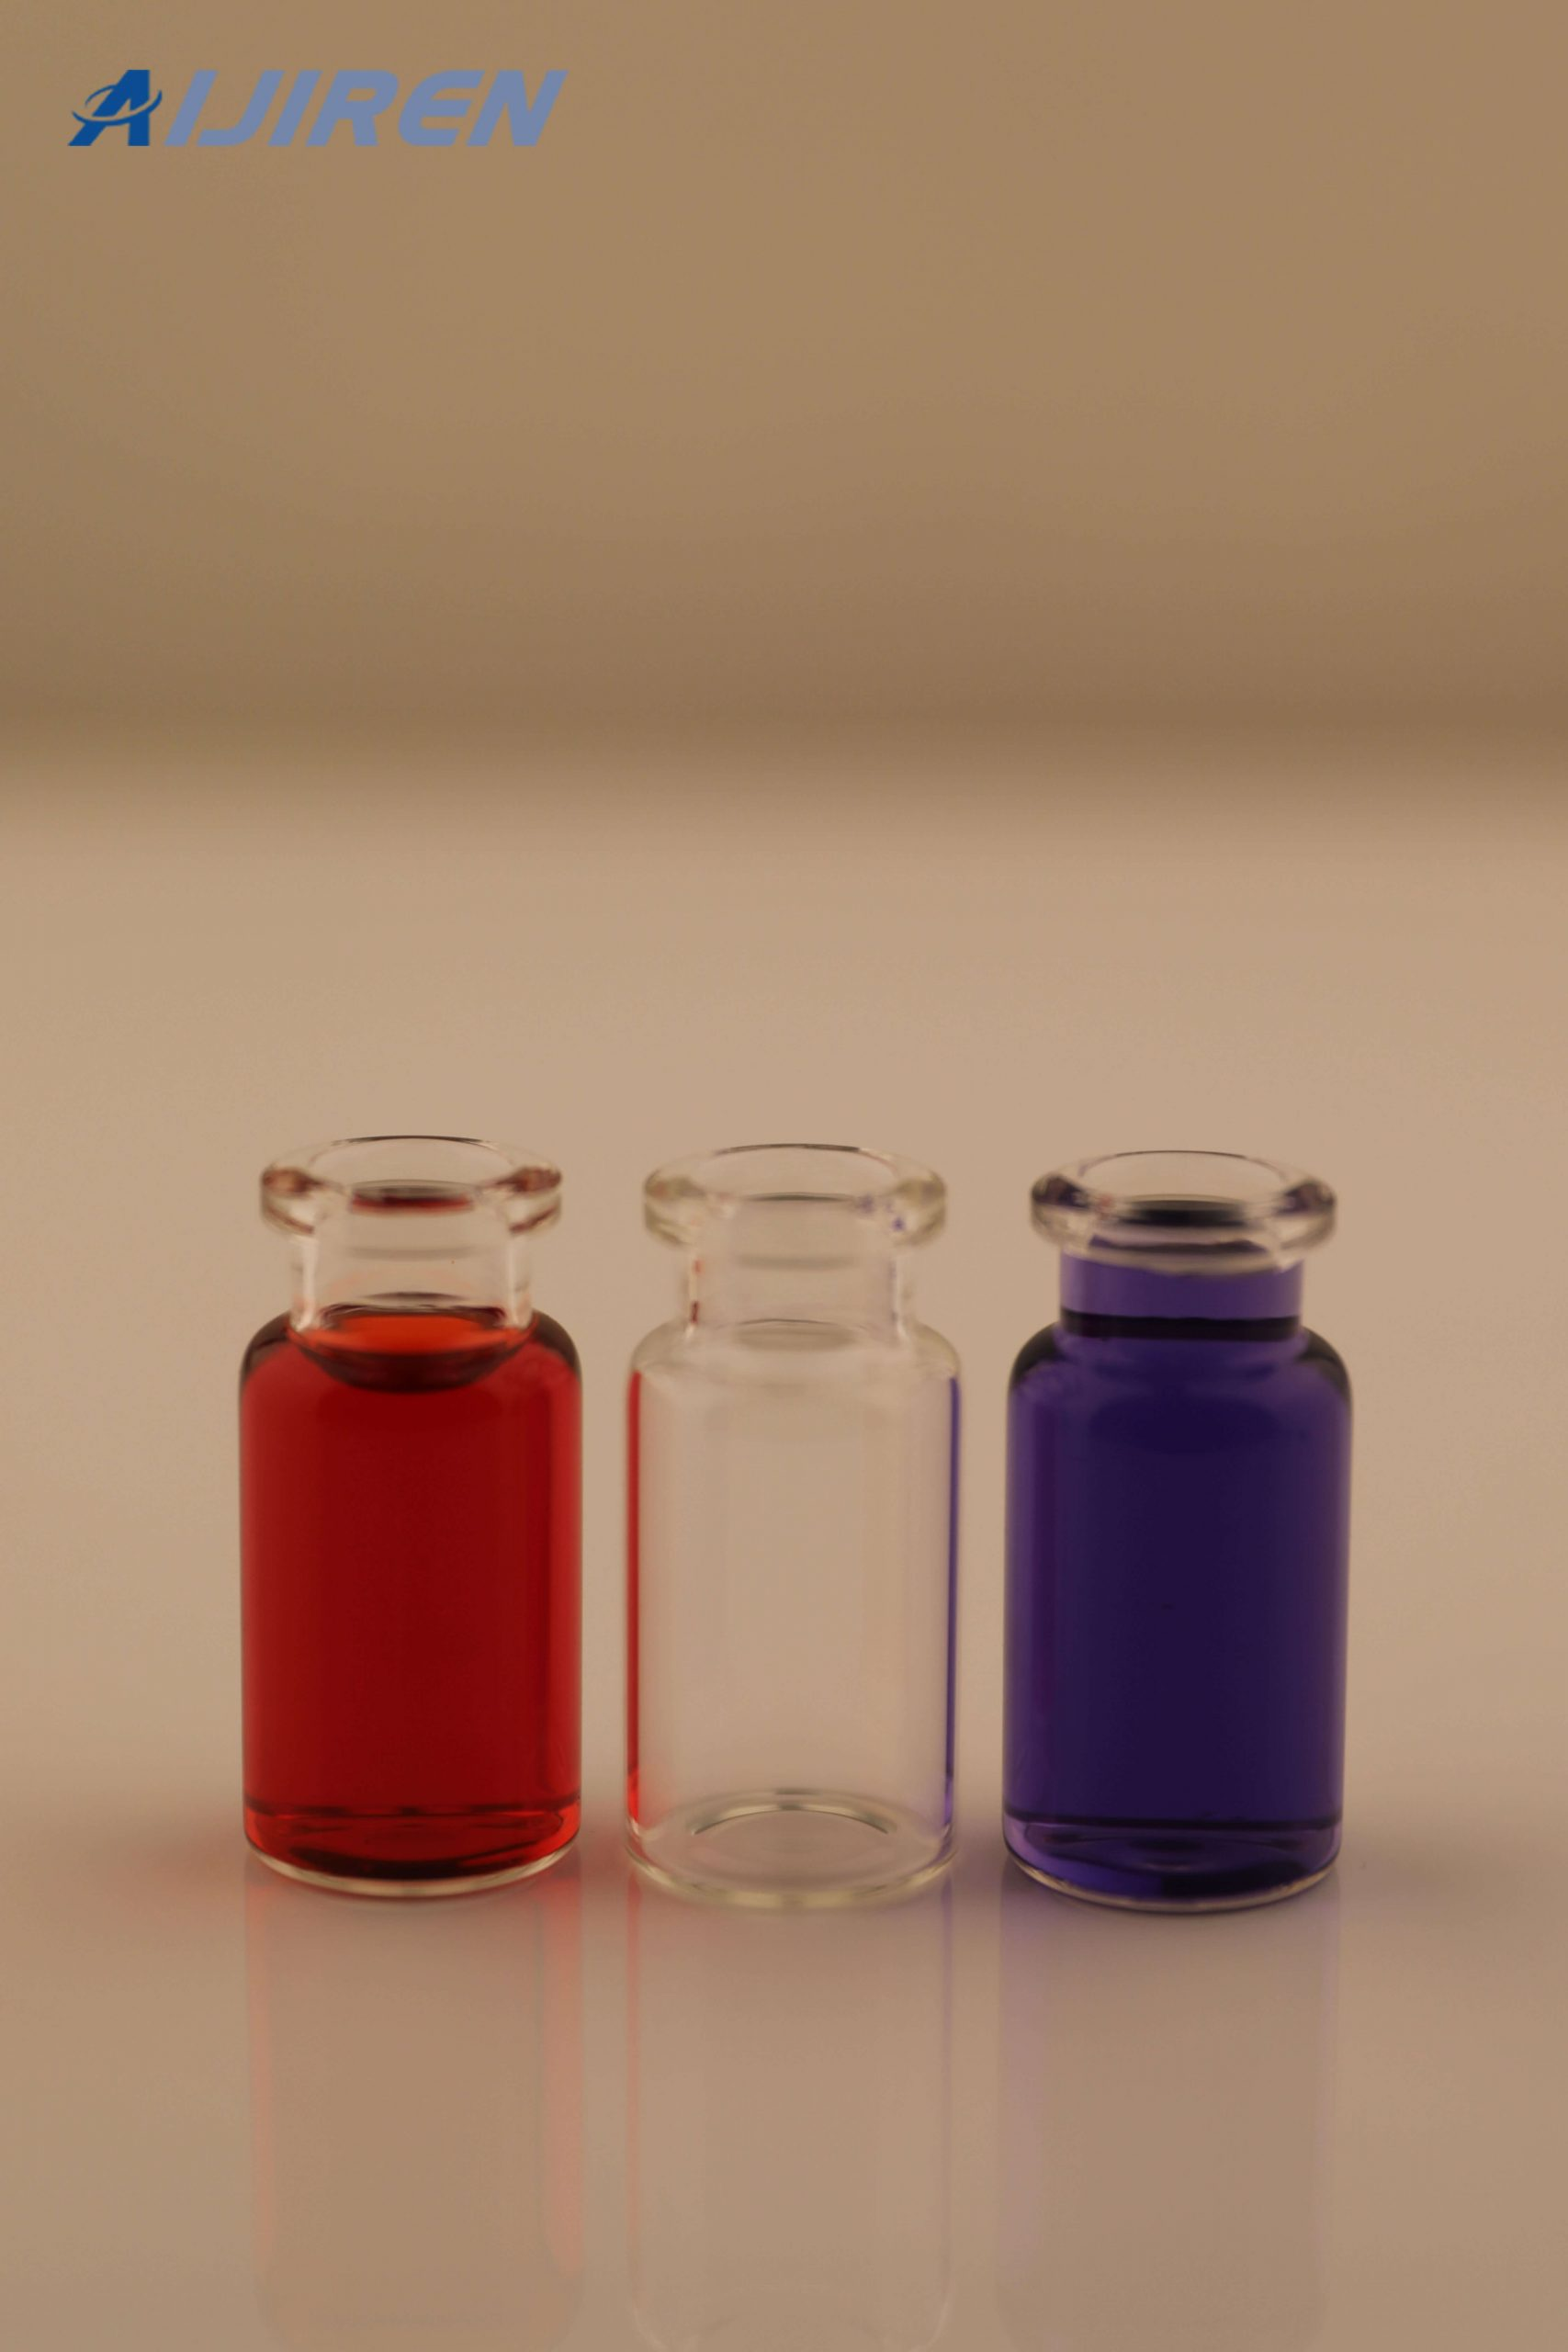 10ML Headspace Vial for GC for Agilent